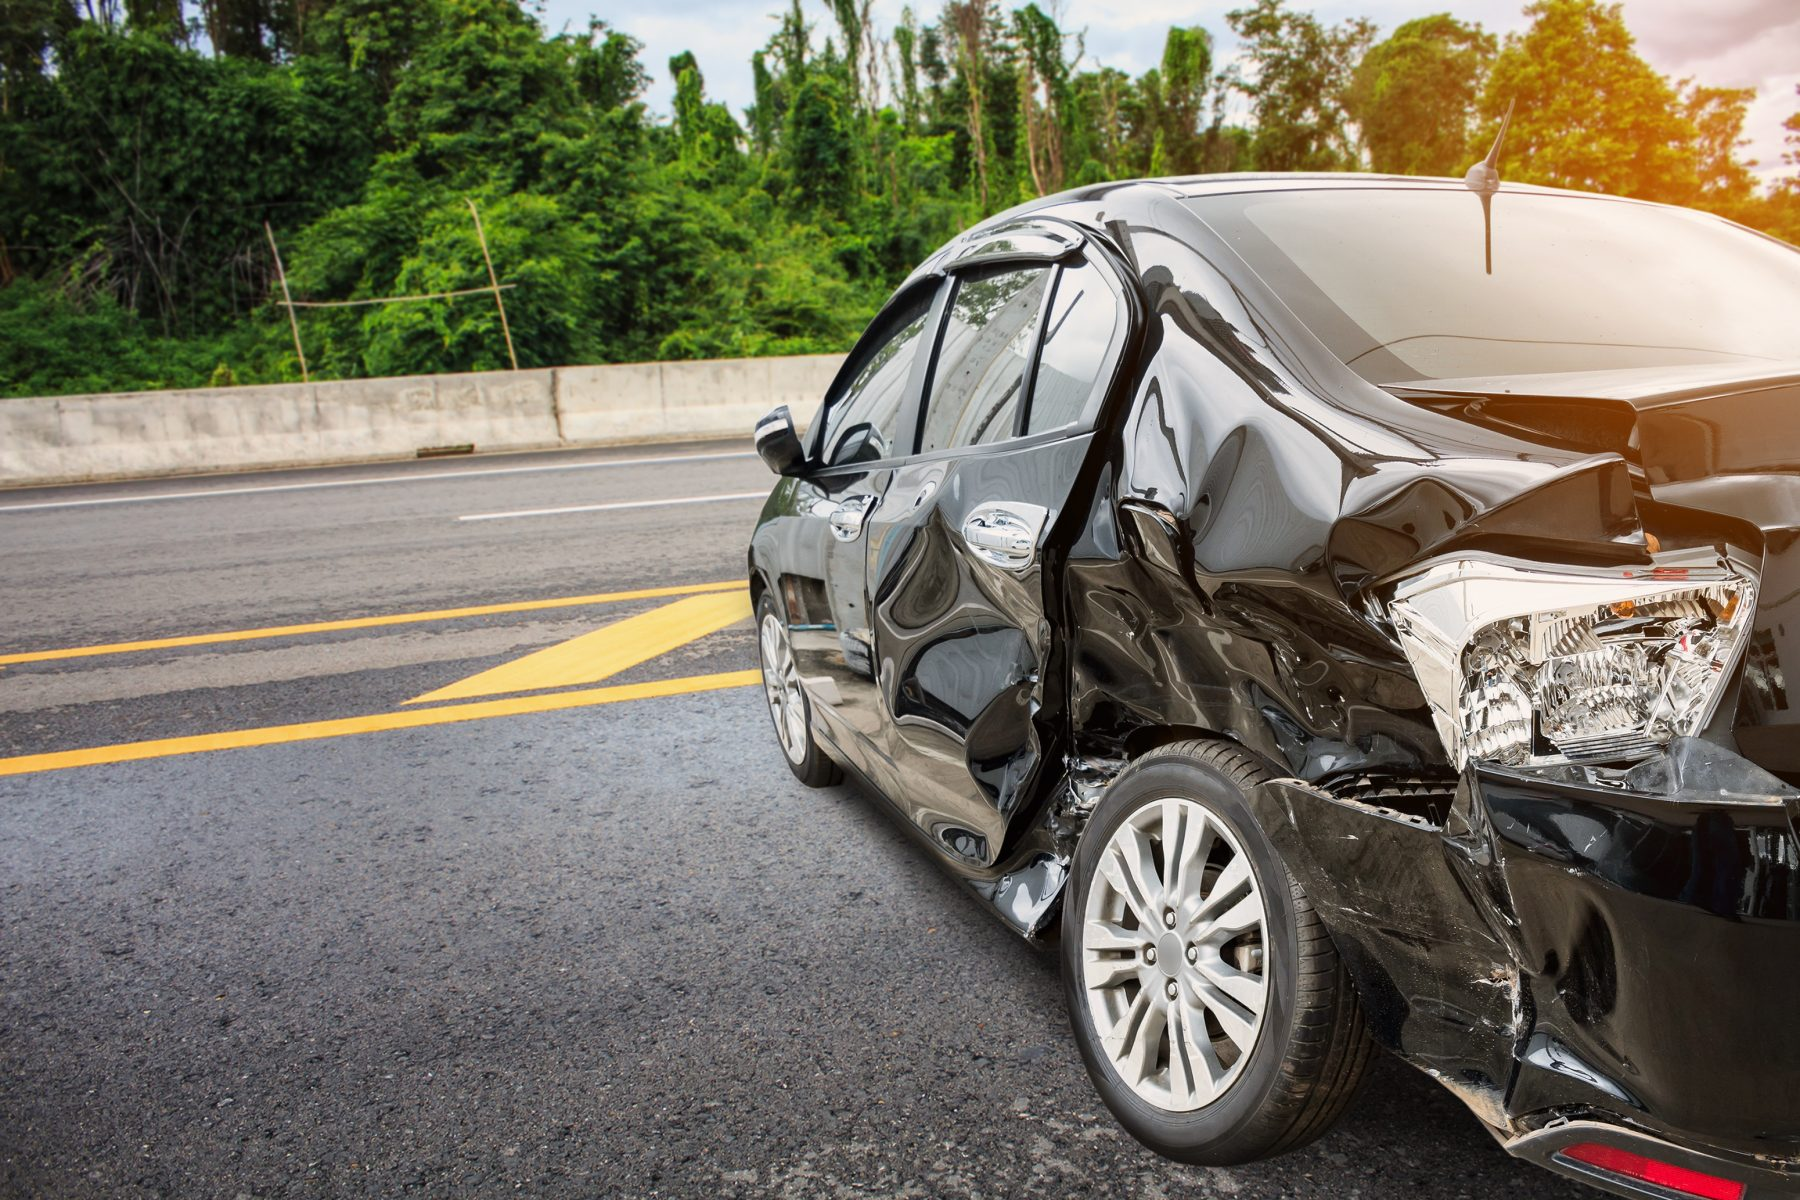 What to do after a car accident in Humble Texas